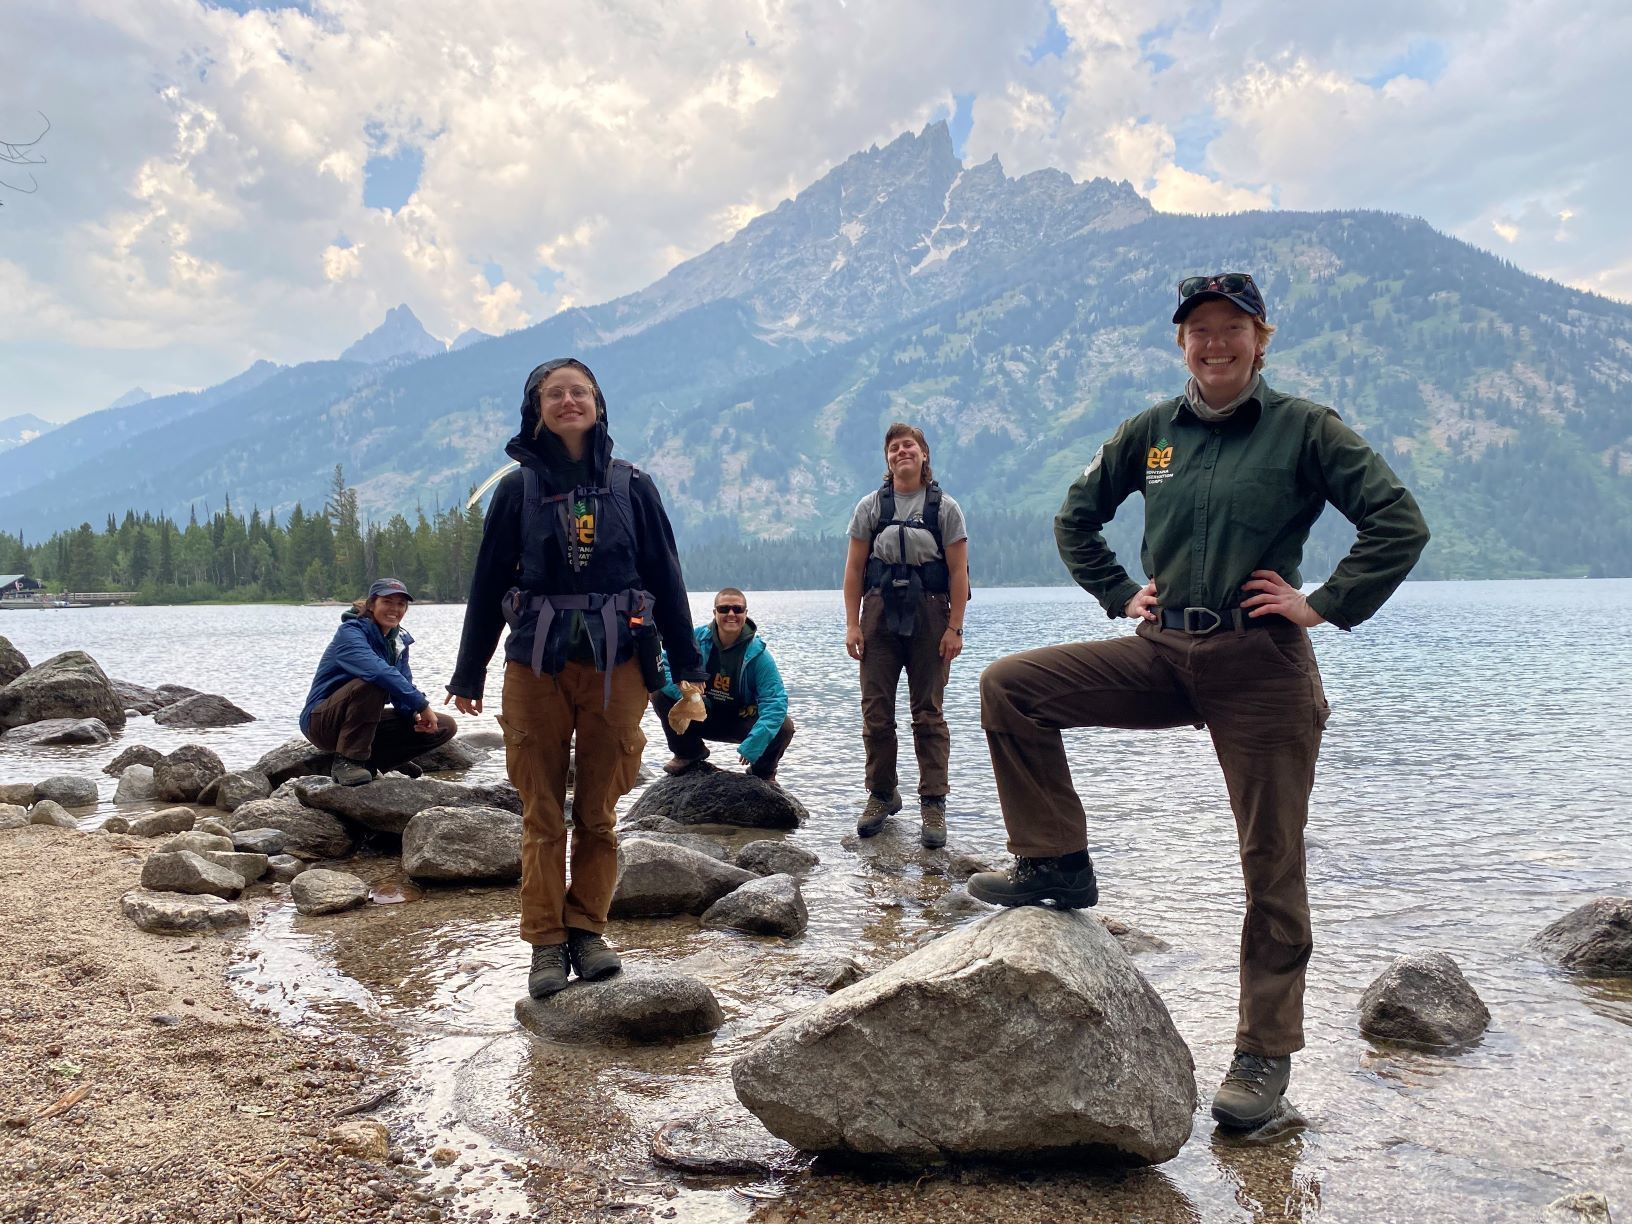 There Once Was A Crew At Grand Teton, a poem by Elizabeth Stone